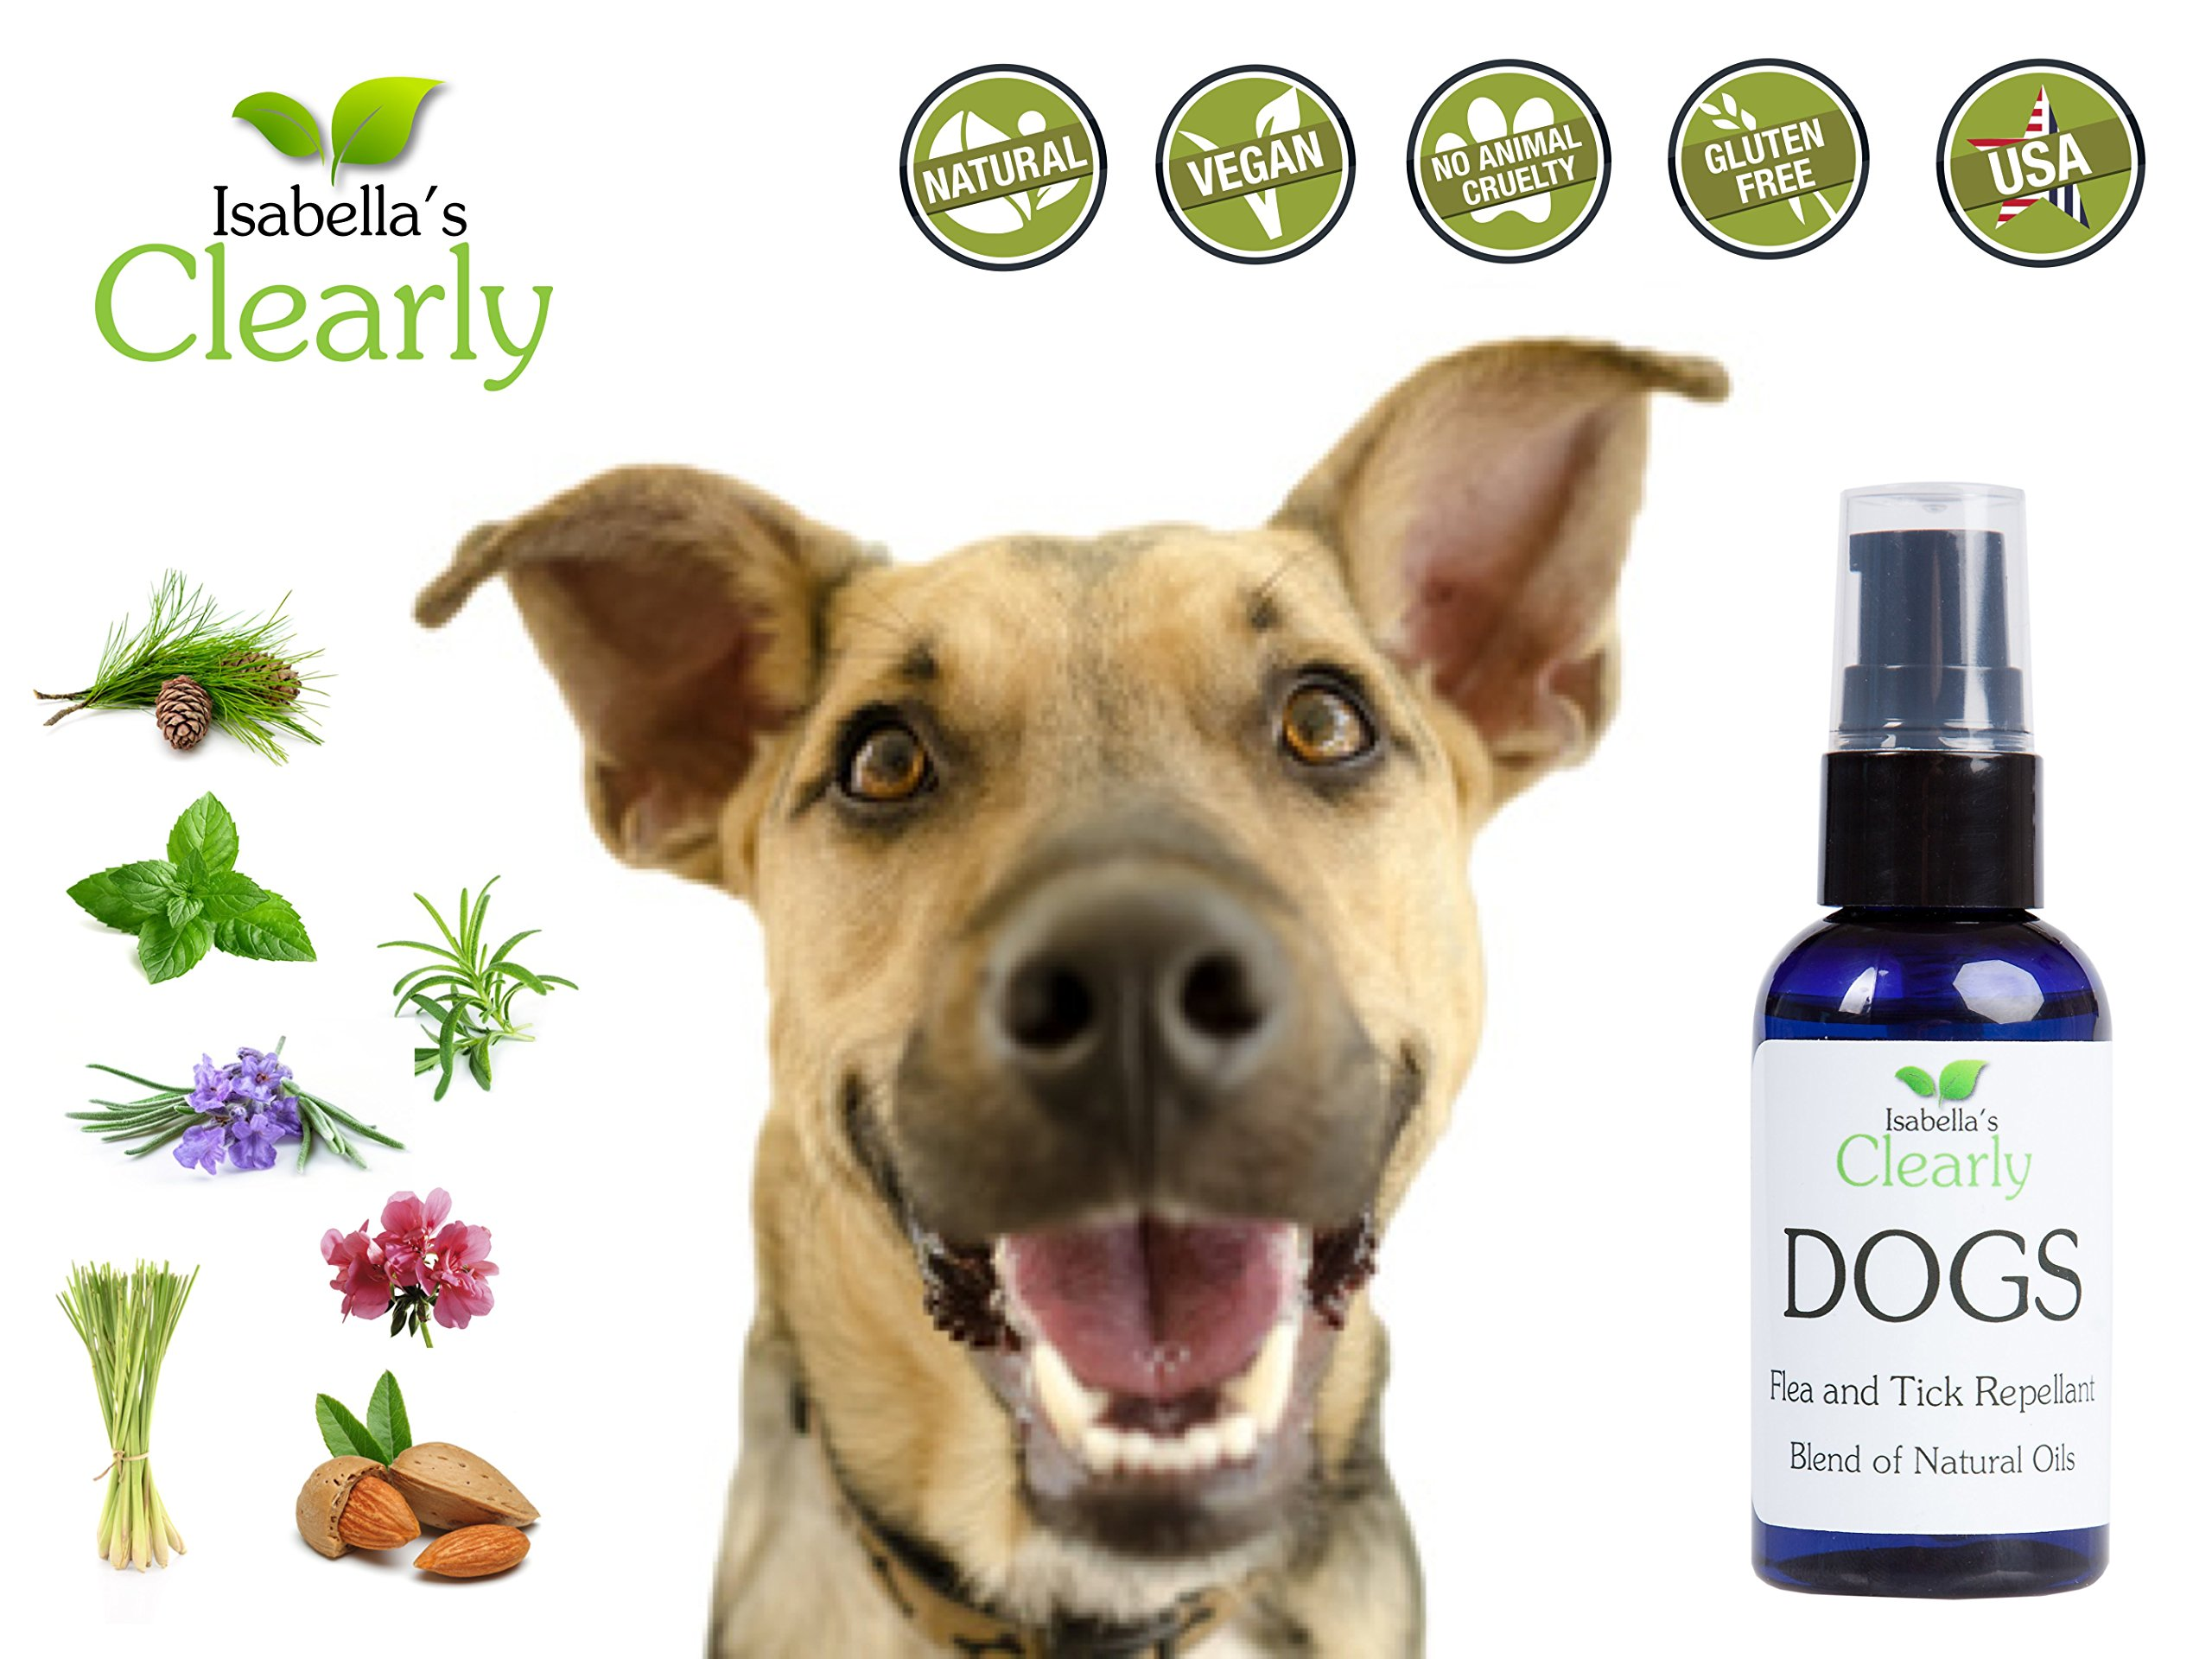 Isabella's Clearly DOGS Natural & Safe Formula Proven to Repel Ticks and Fleas and Keep them Away from your Pet. Effective therapeutic oils including Cedarwood, Peppermint, Lavender, Lemongrass. 60ml 3